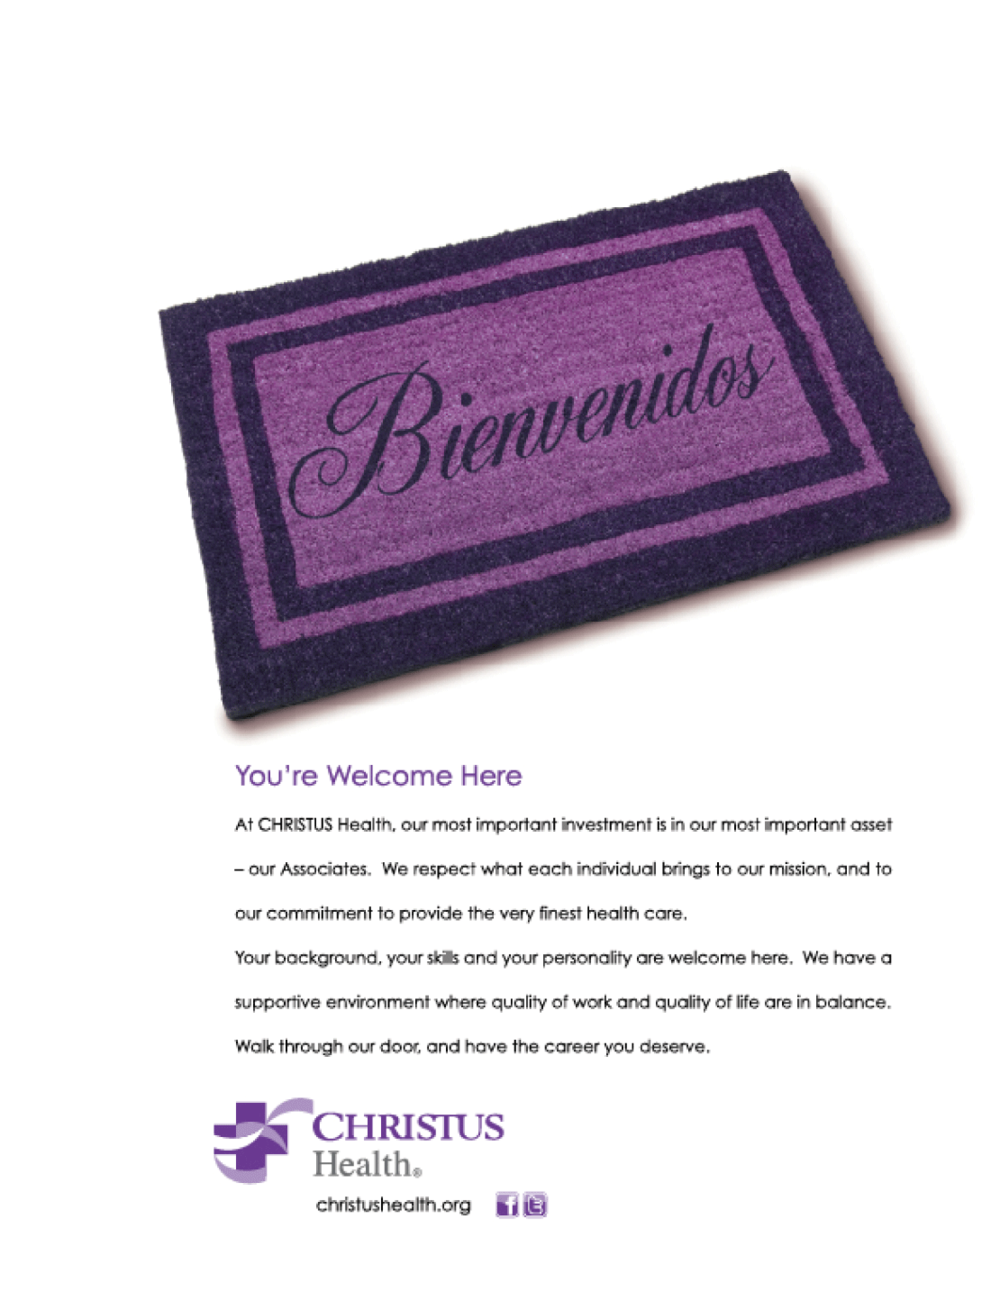 christus-health-welcome-ad.png